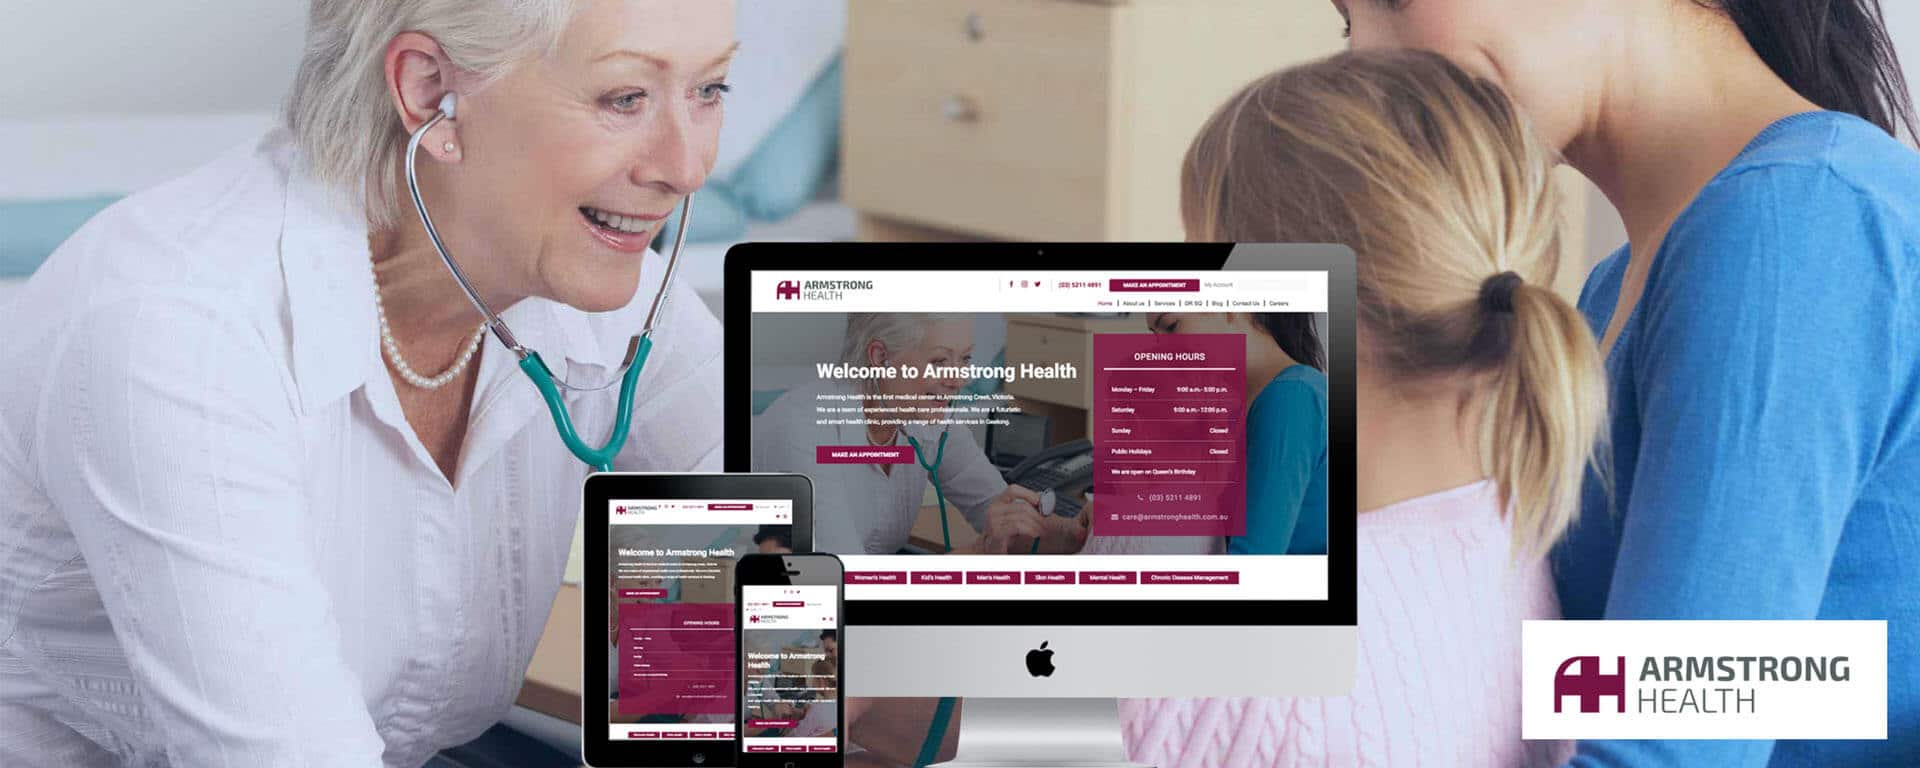 Armstrong Health Clinic website design